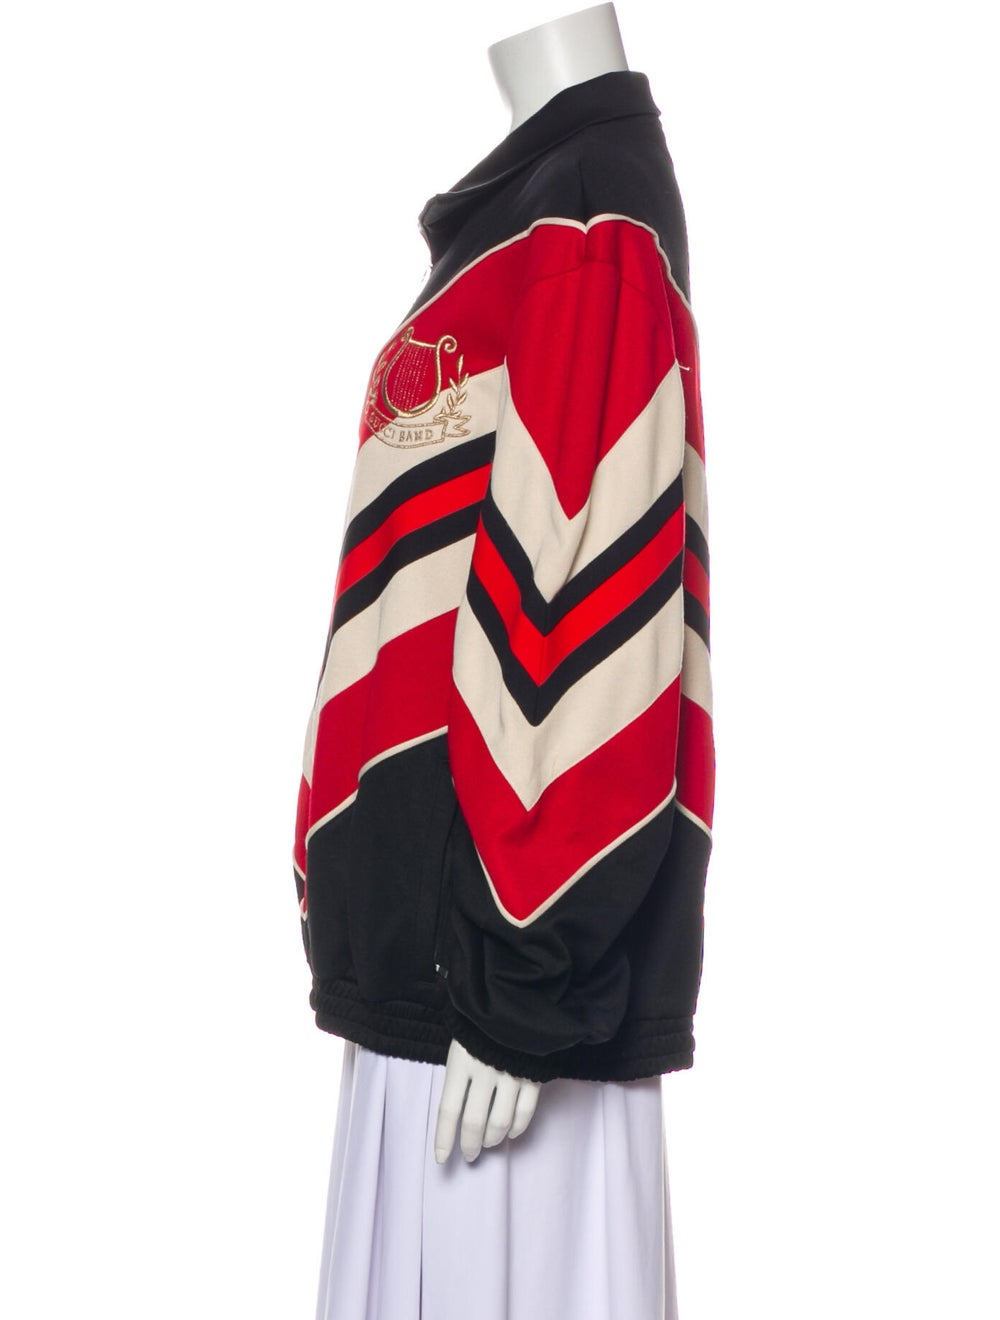 Gucci 2019 Striped Bomber Jacket w/ Tags Black - image 2